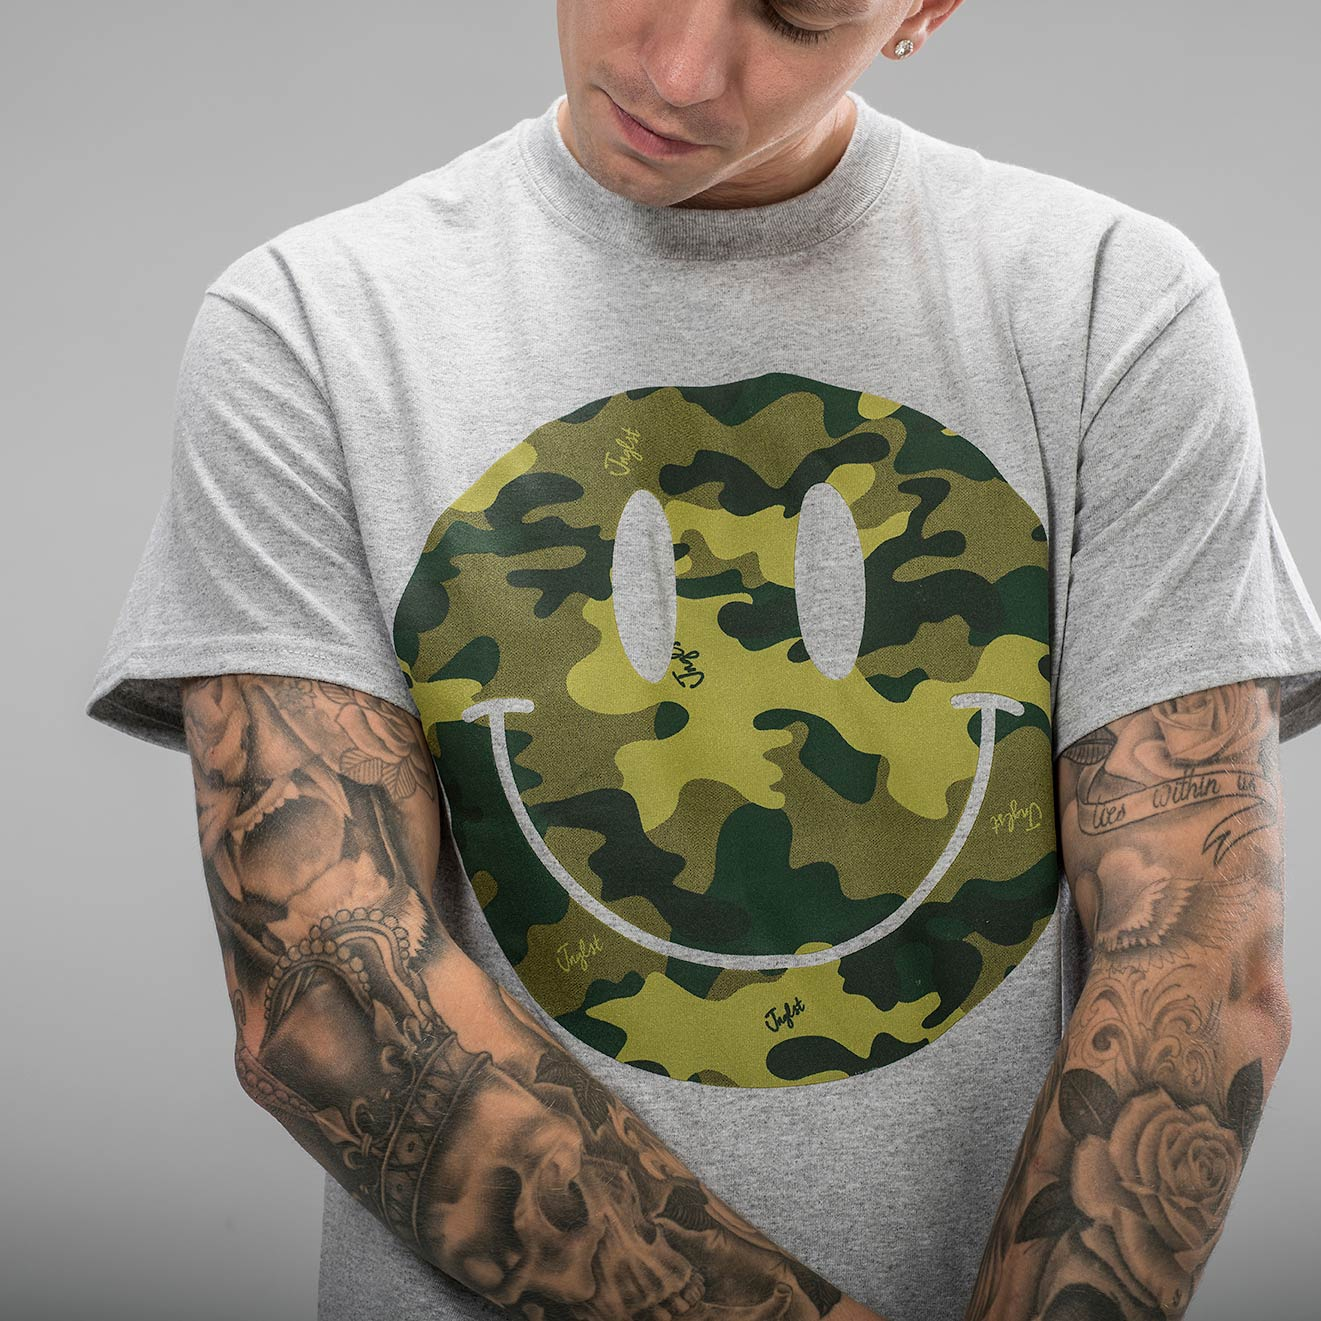 Grey Rave T Shirt with Camo Smiley Design